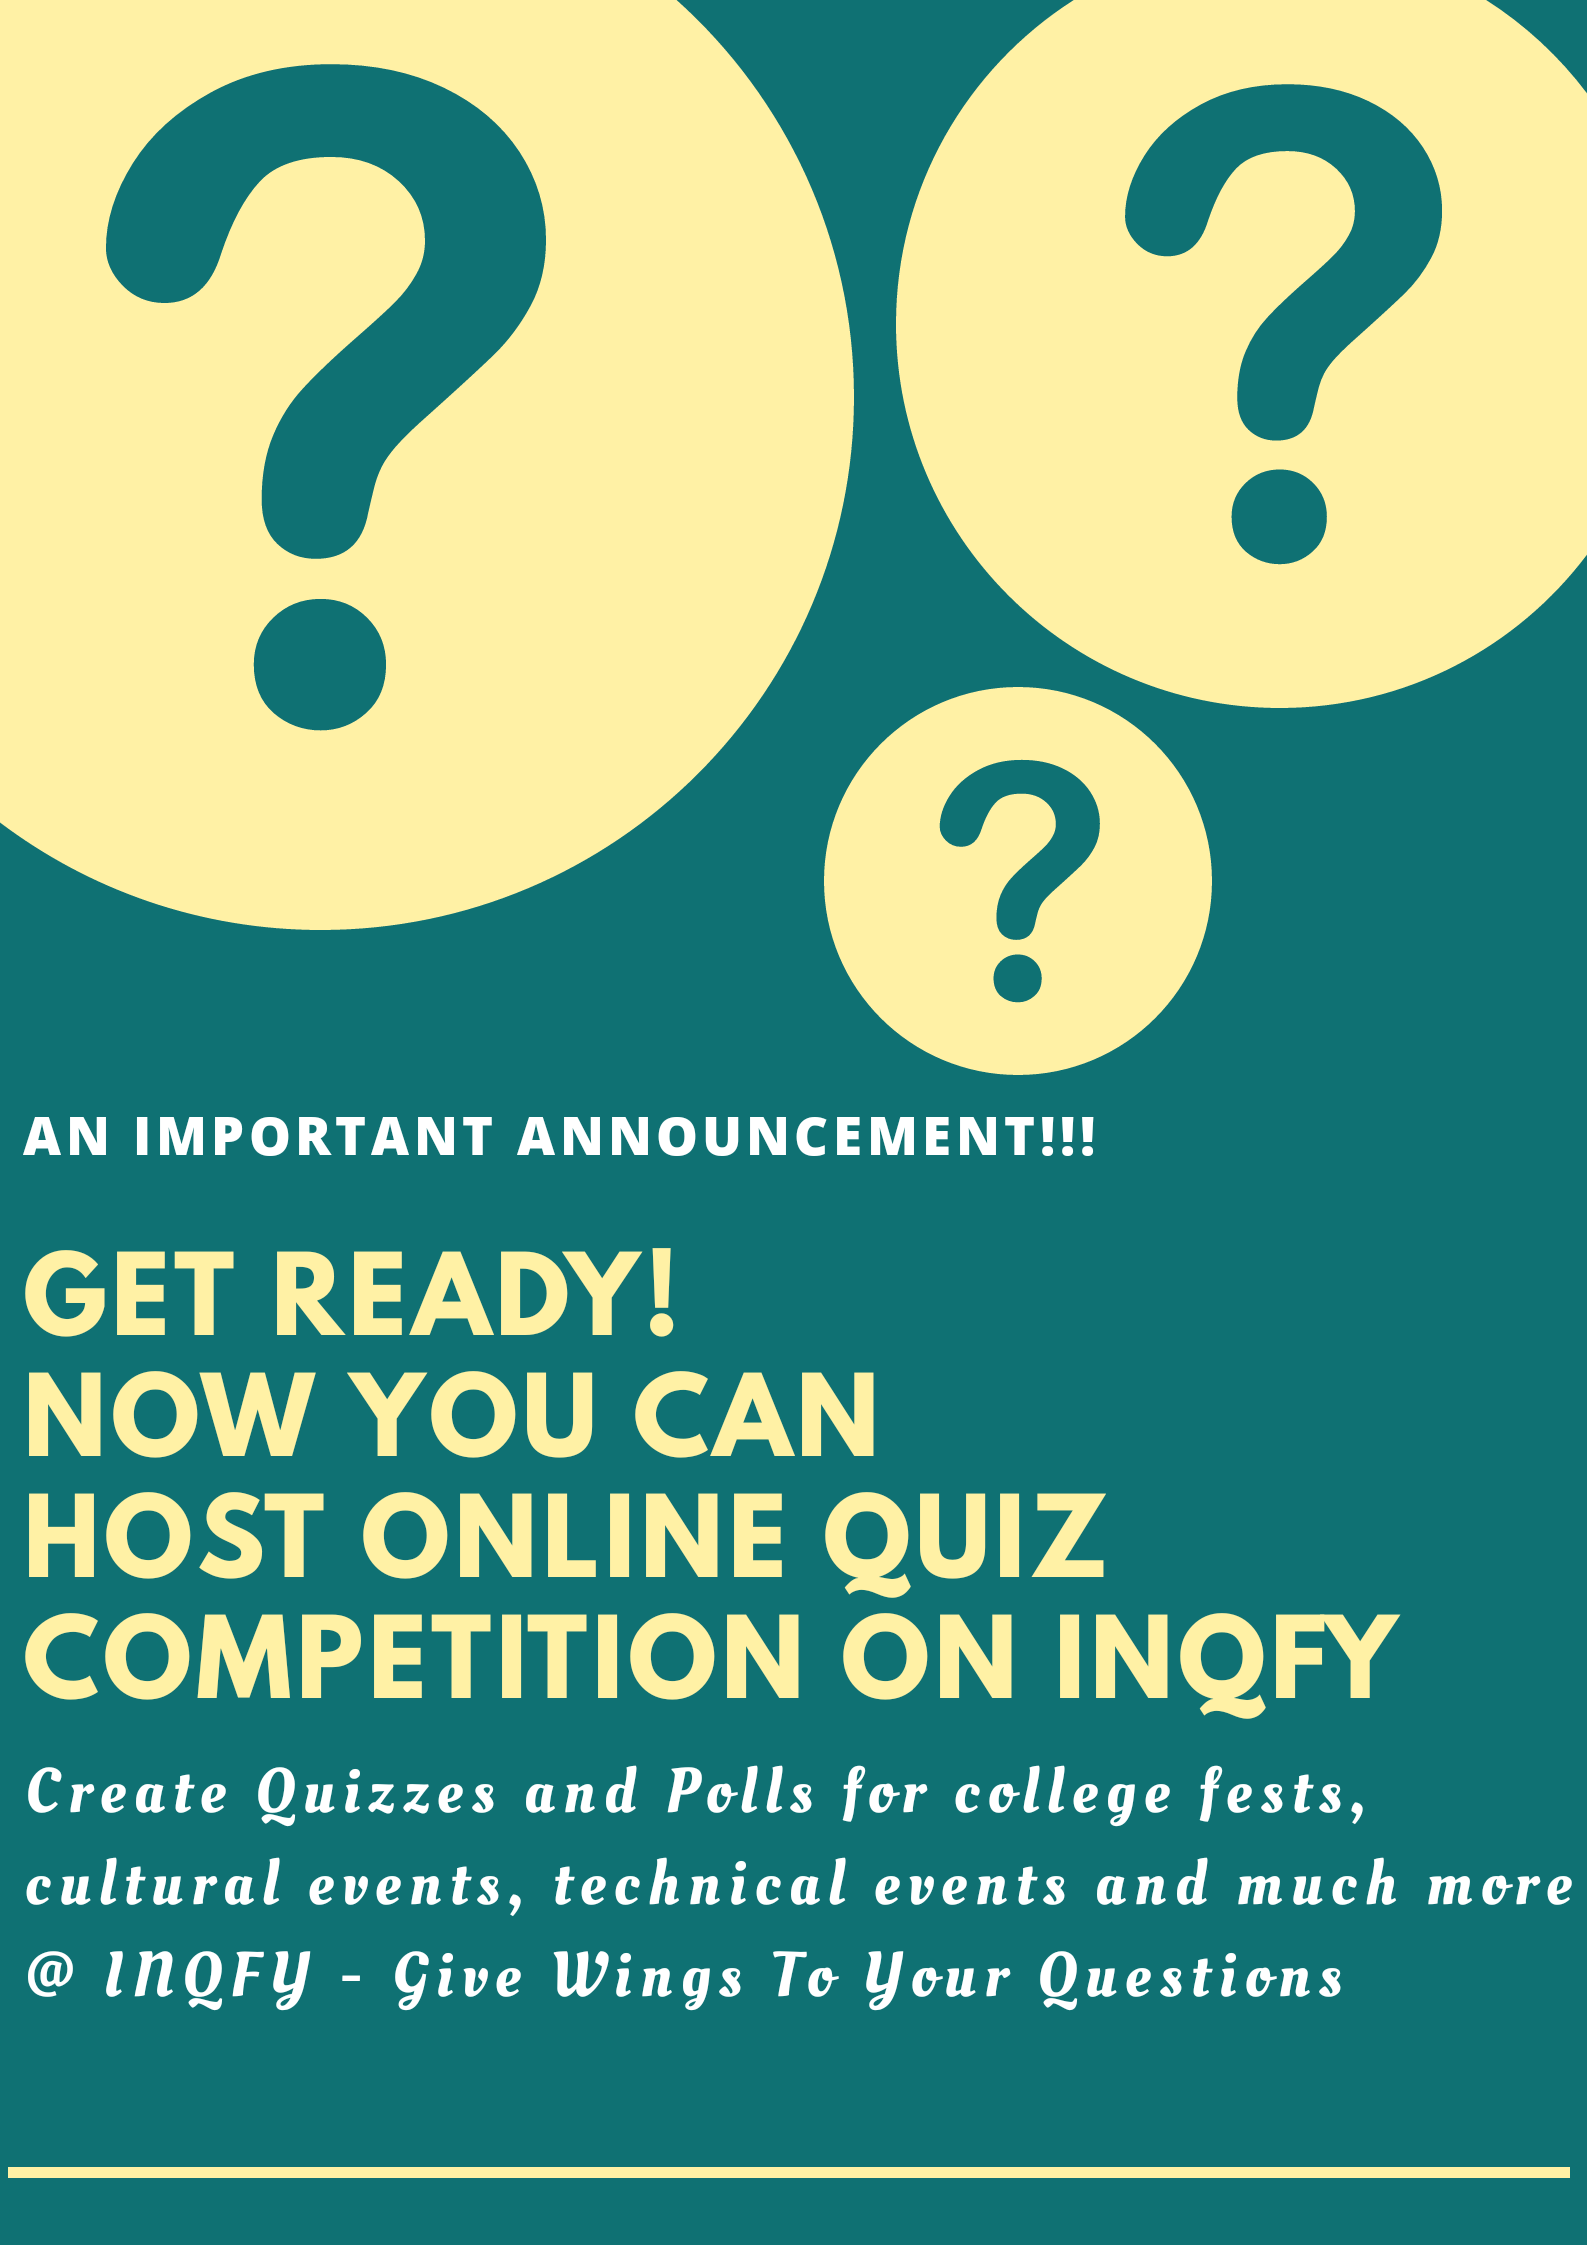 Host Your Online Quiz Competiton With Inqfy Quiz Questions Polls Inqfy Online Quiz Quiz This Or That Questions